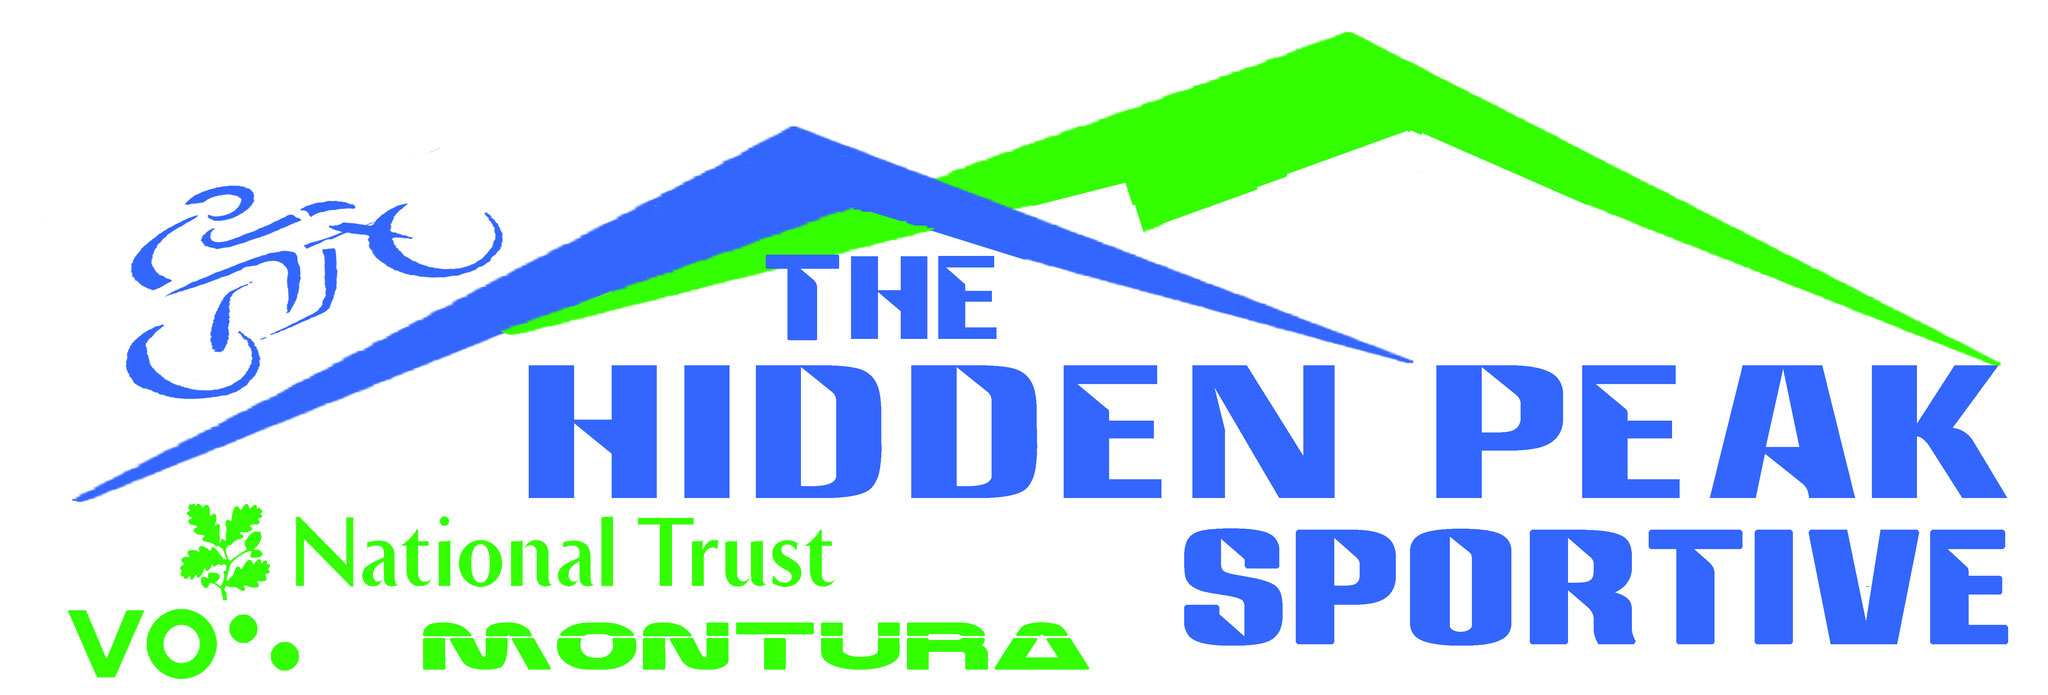 The National Trust Hidden Peak Challenge